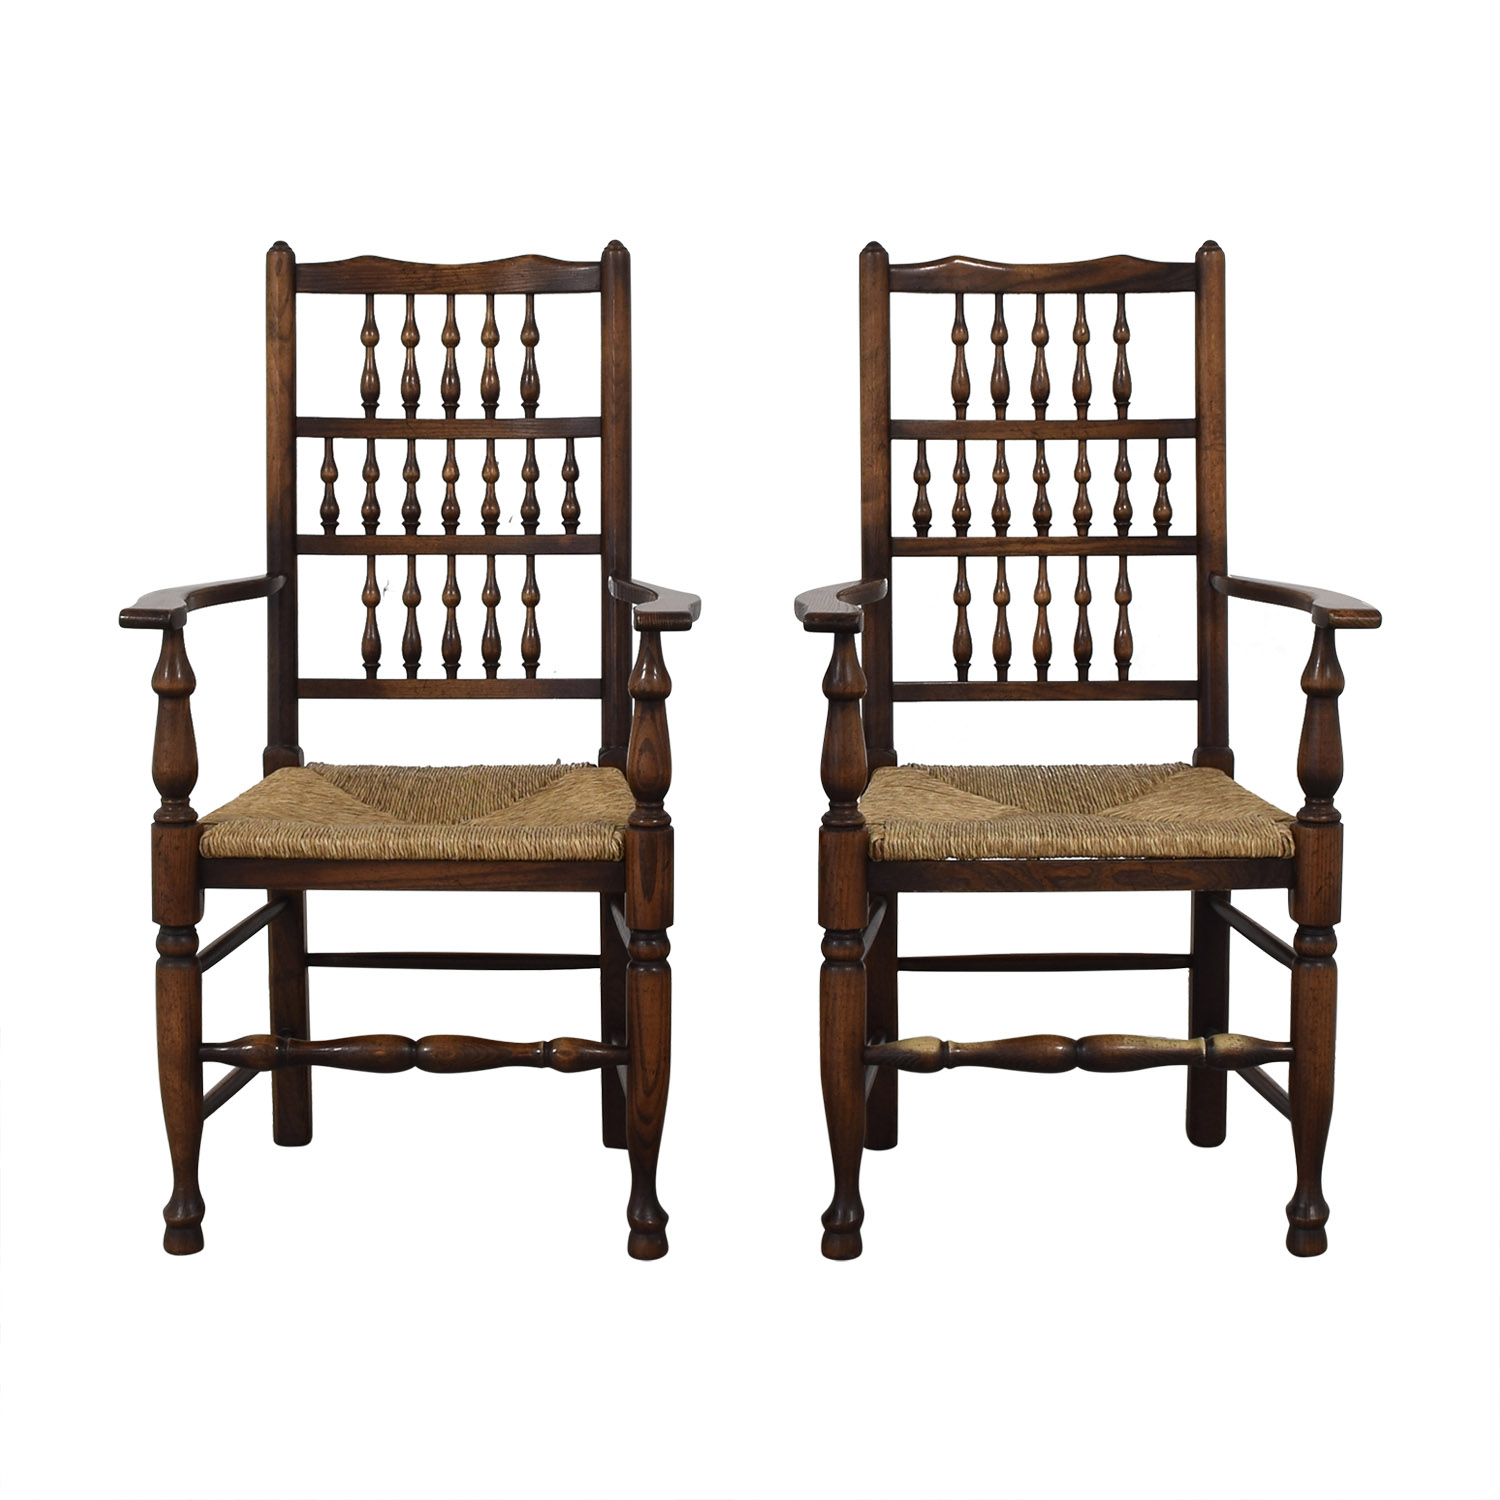 Wood and Cane Armchairs Chairs